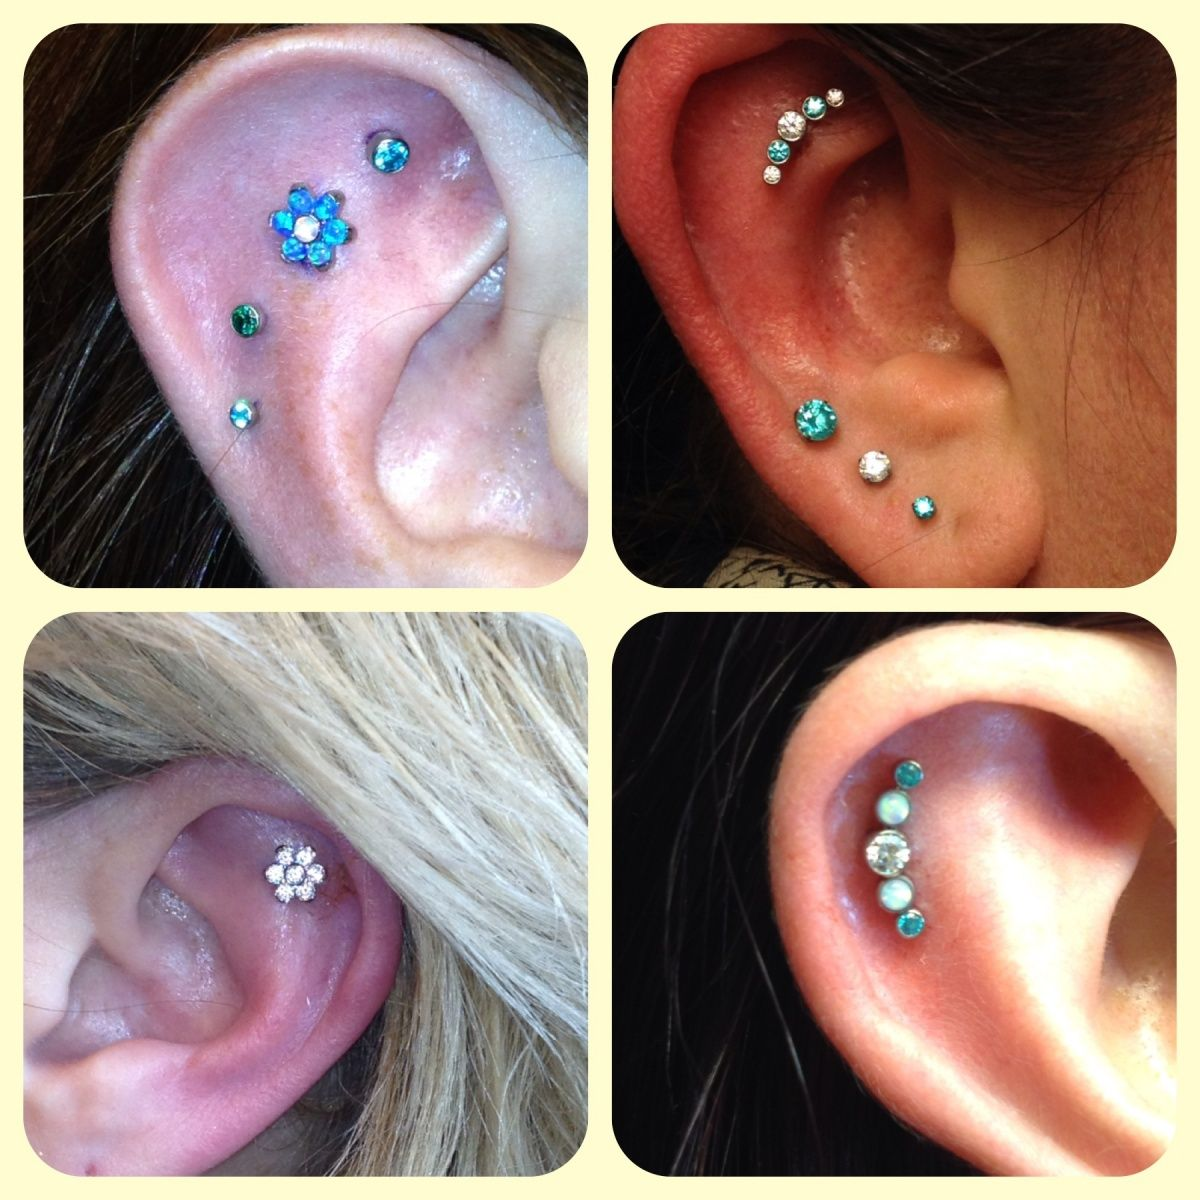 a62ec600f Flat of the ear / helix cartilage piercings with Anatometal cluster  earrings and neometal jewelry.